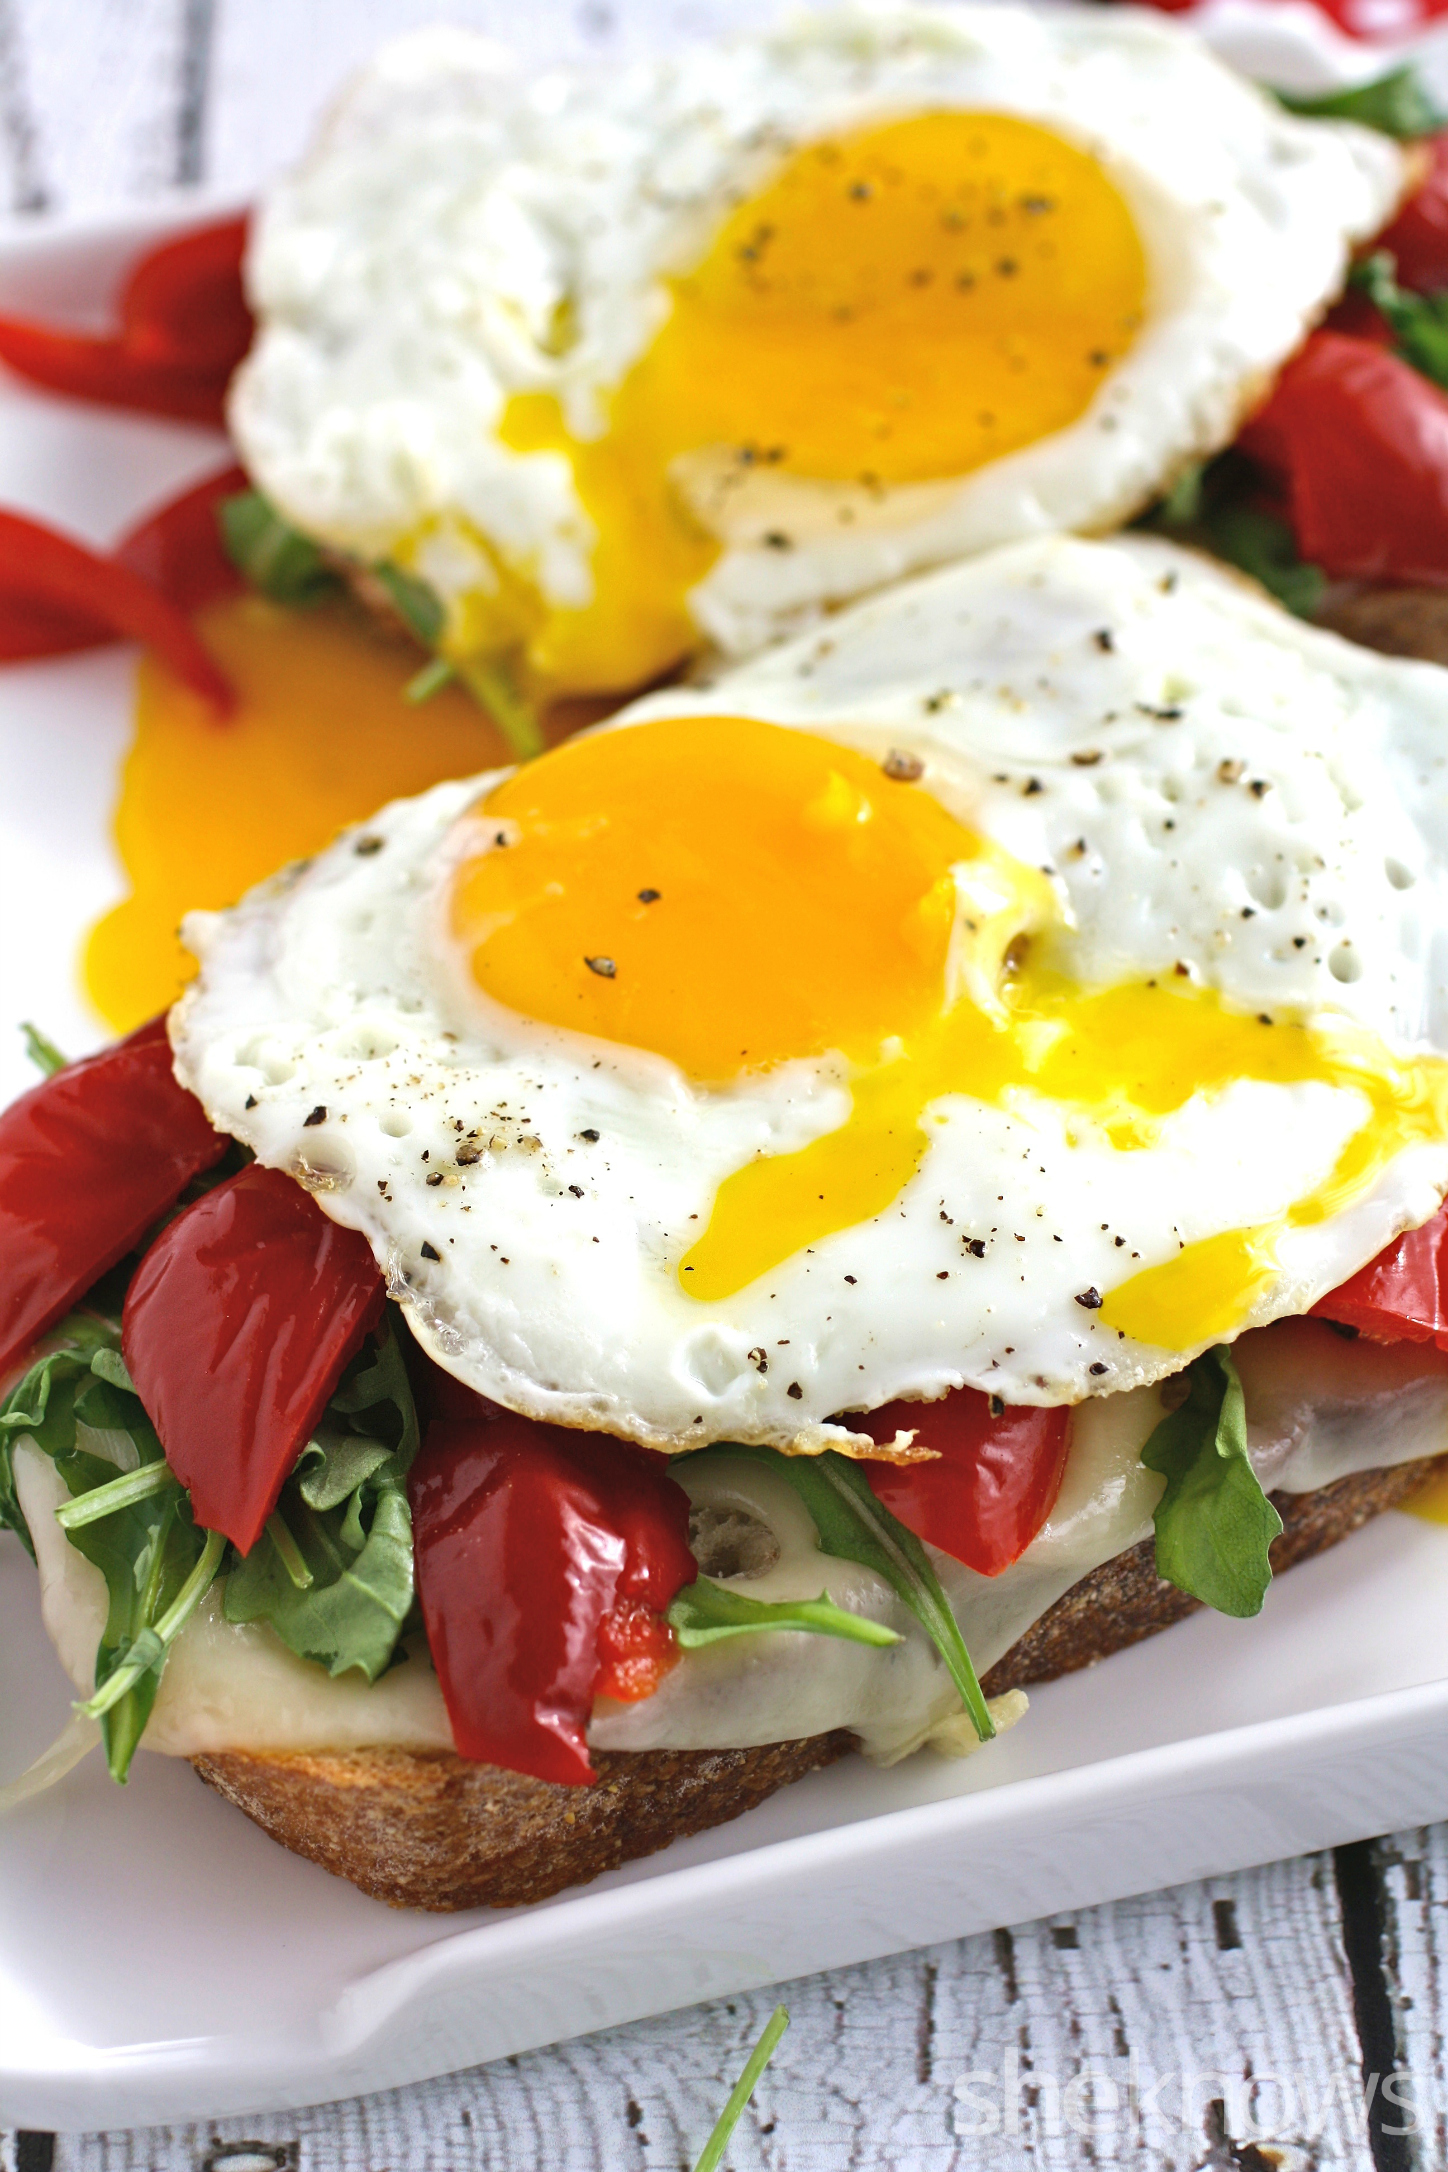 This grilled cheese sandwich with roasted red peppers, arugula, and fried egg is somthing special